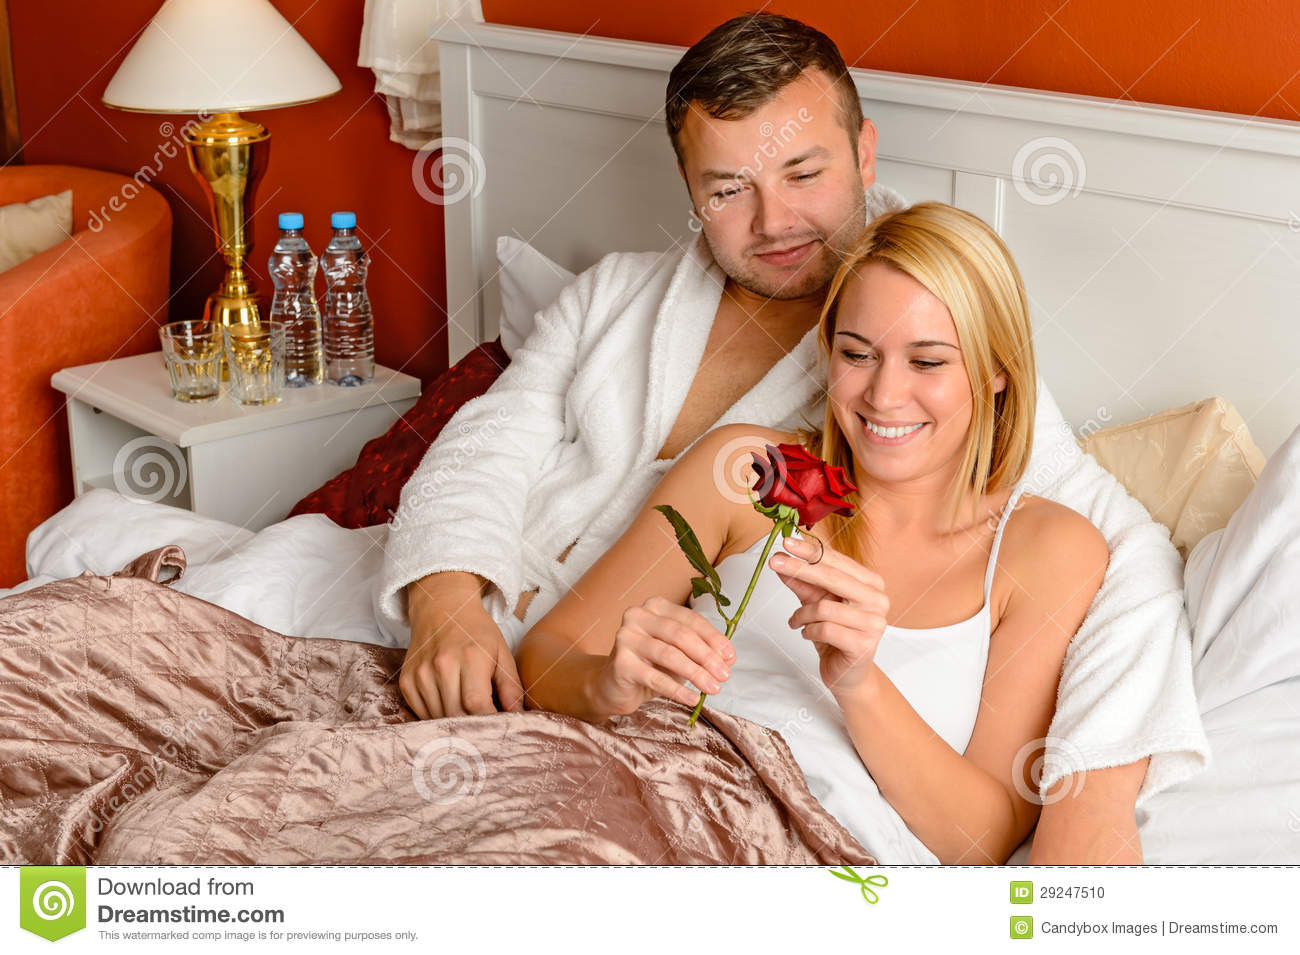 Loving couple celebrating romantic anniversary rose bed stock